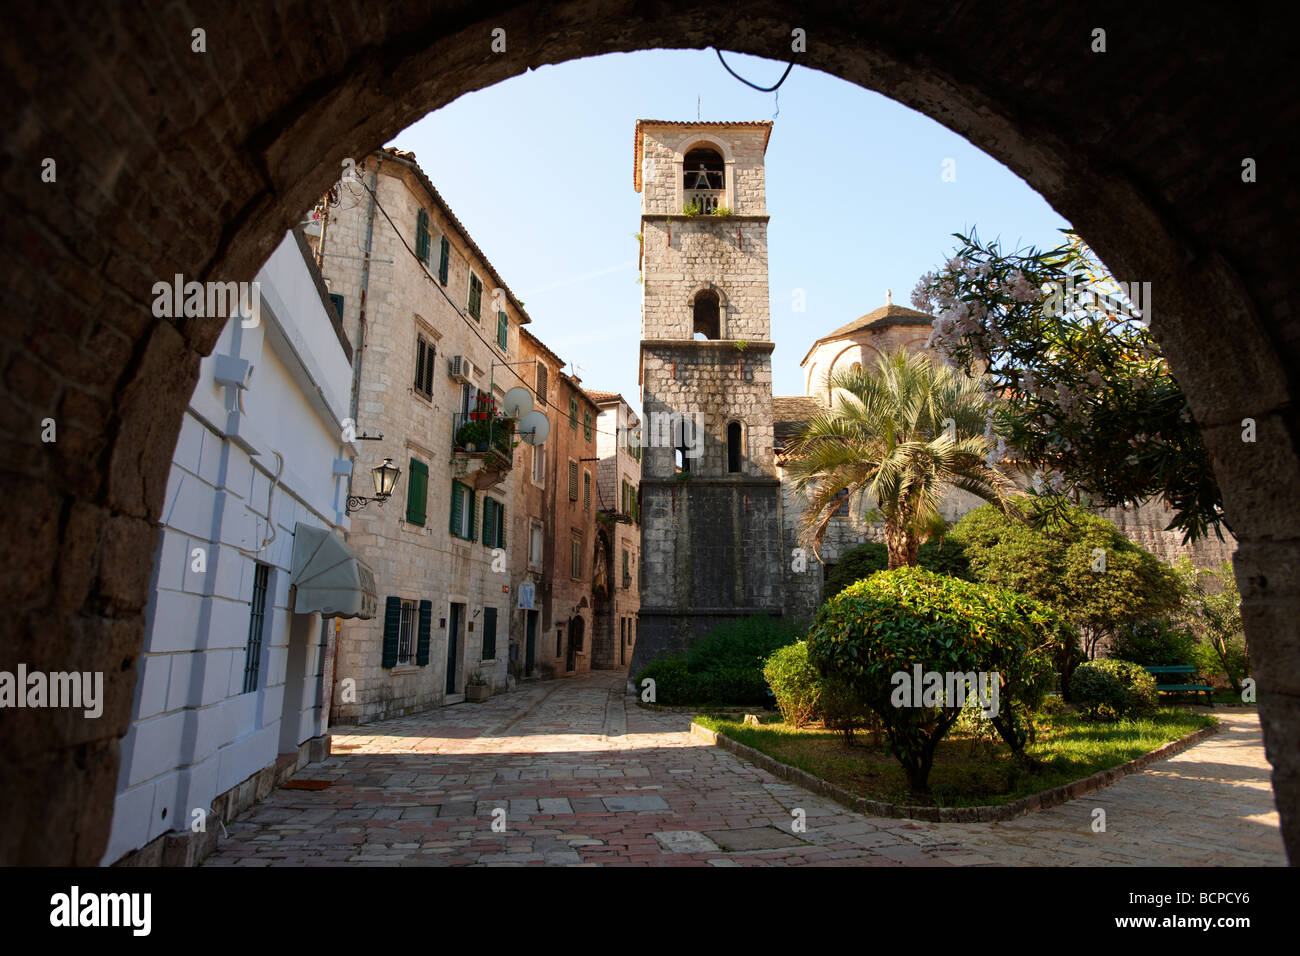 Church Kotor - Montenegro - Stock Image